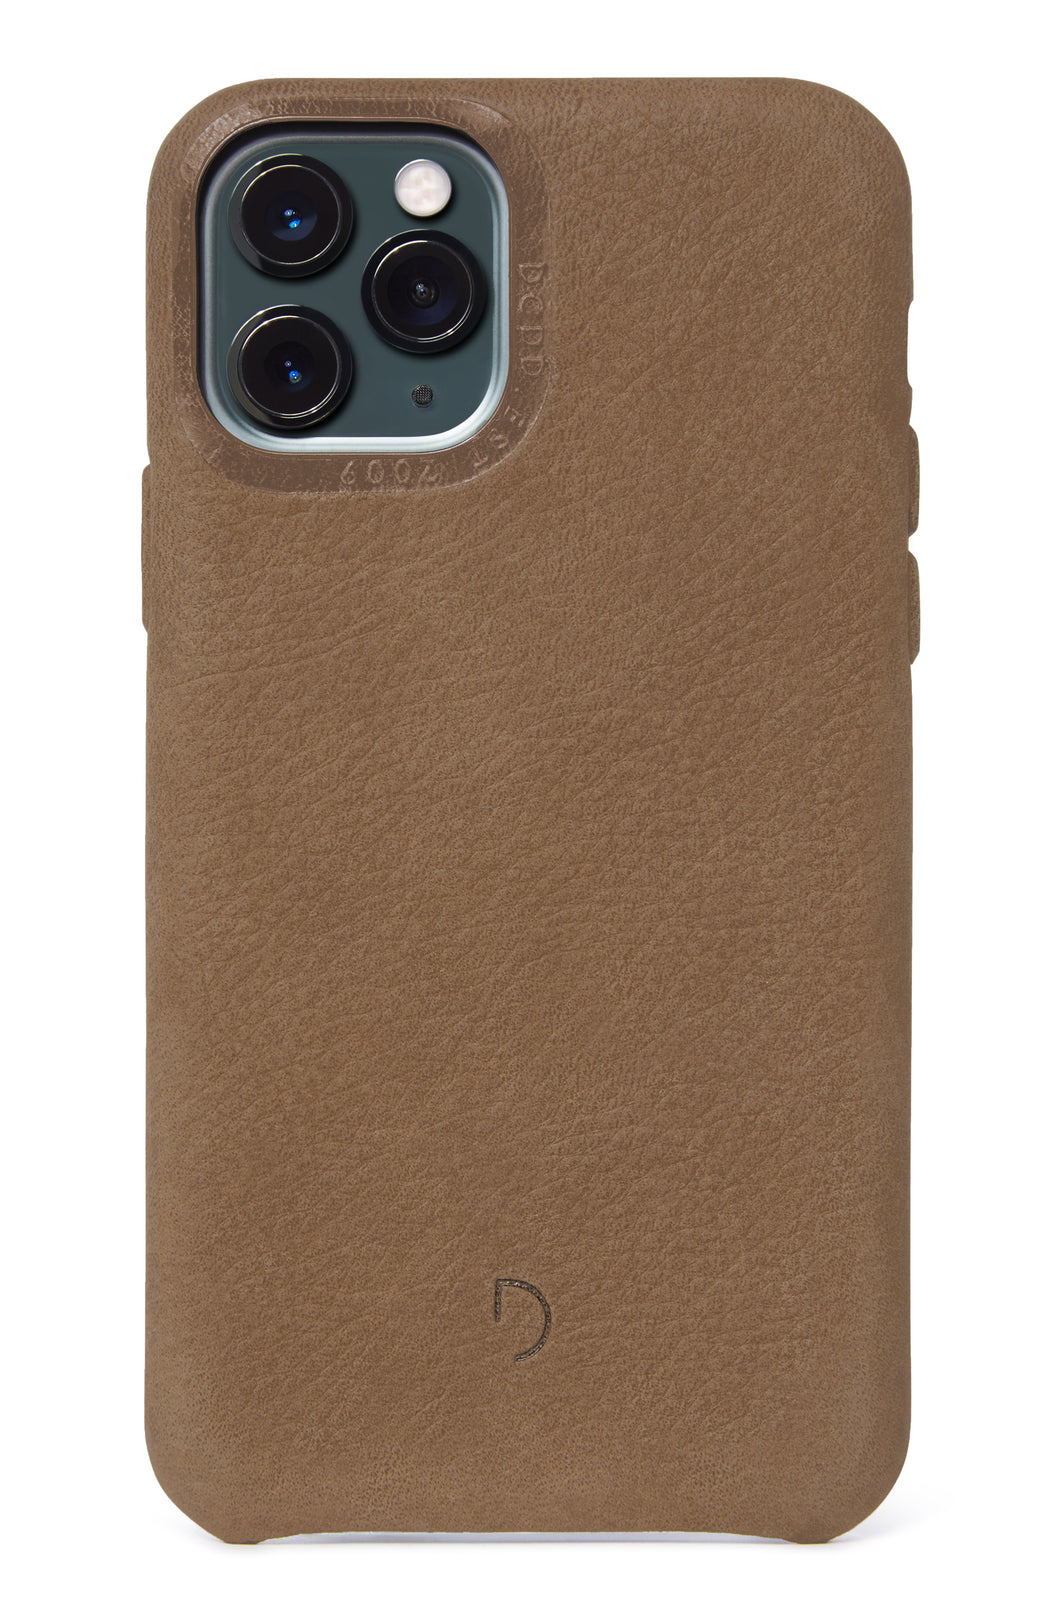 Back Cover Bio Tan - iPhone 11 Pro